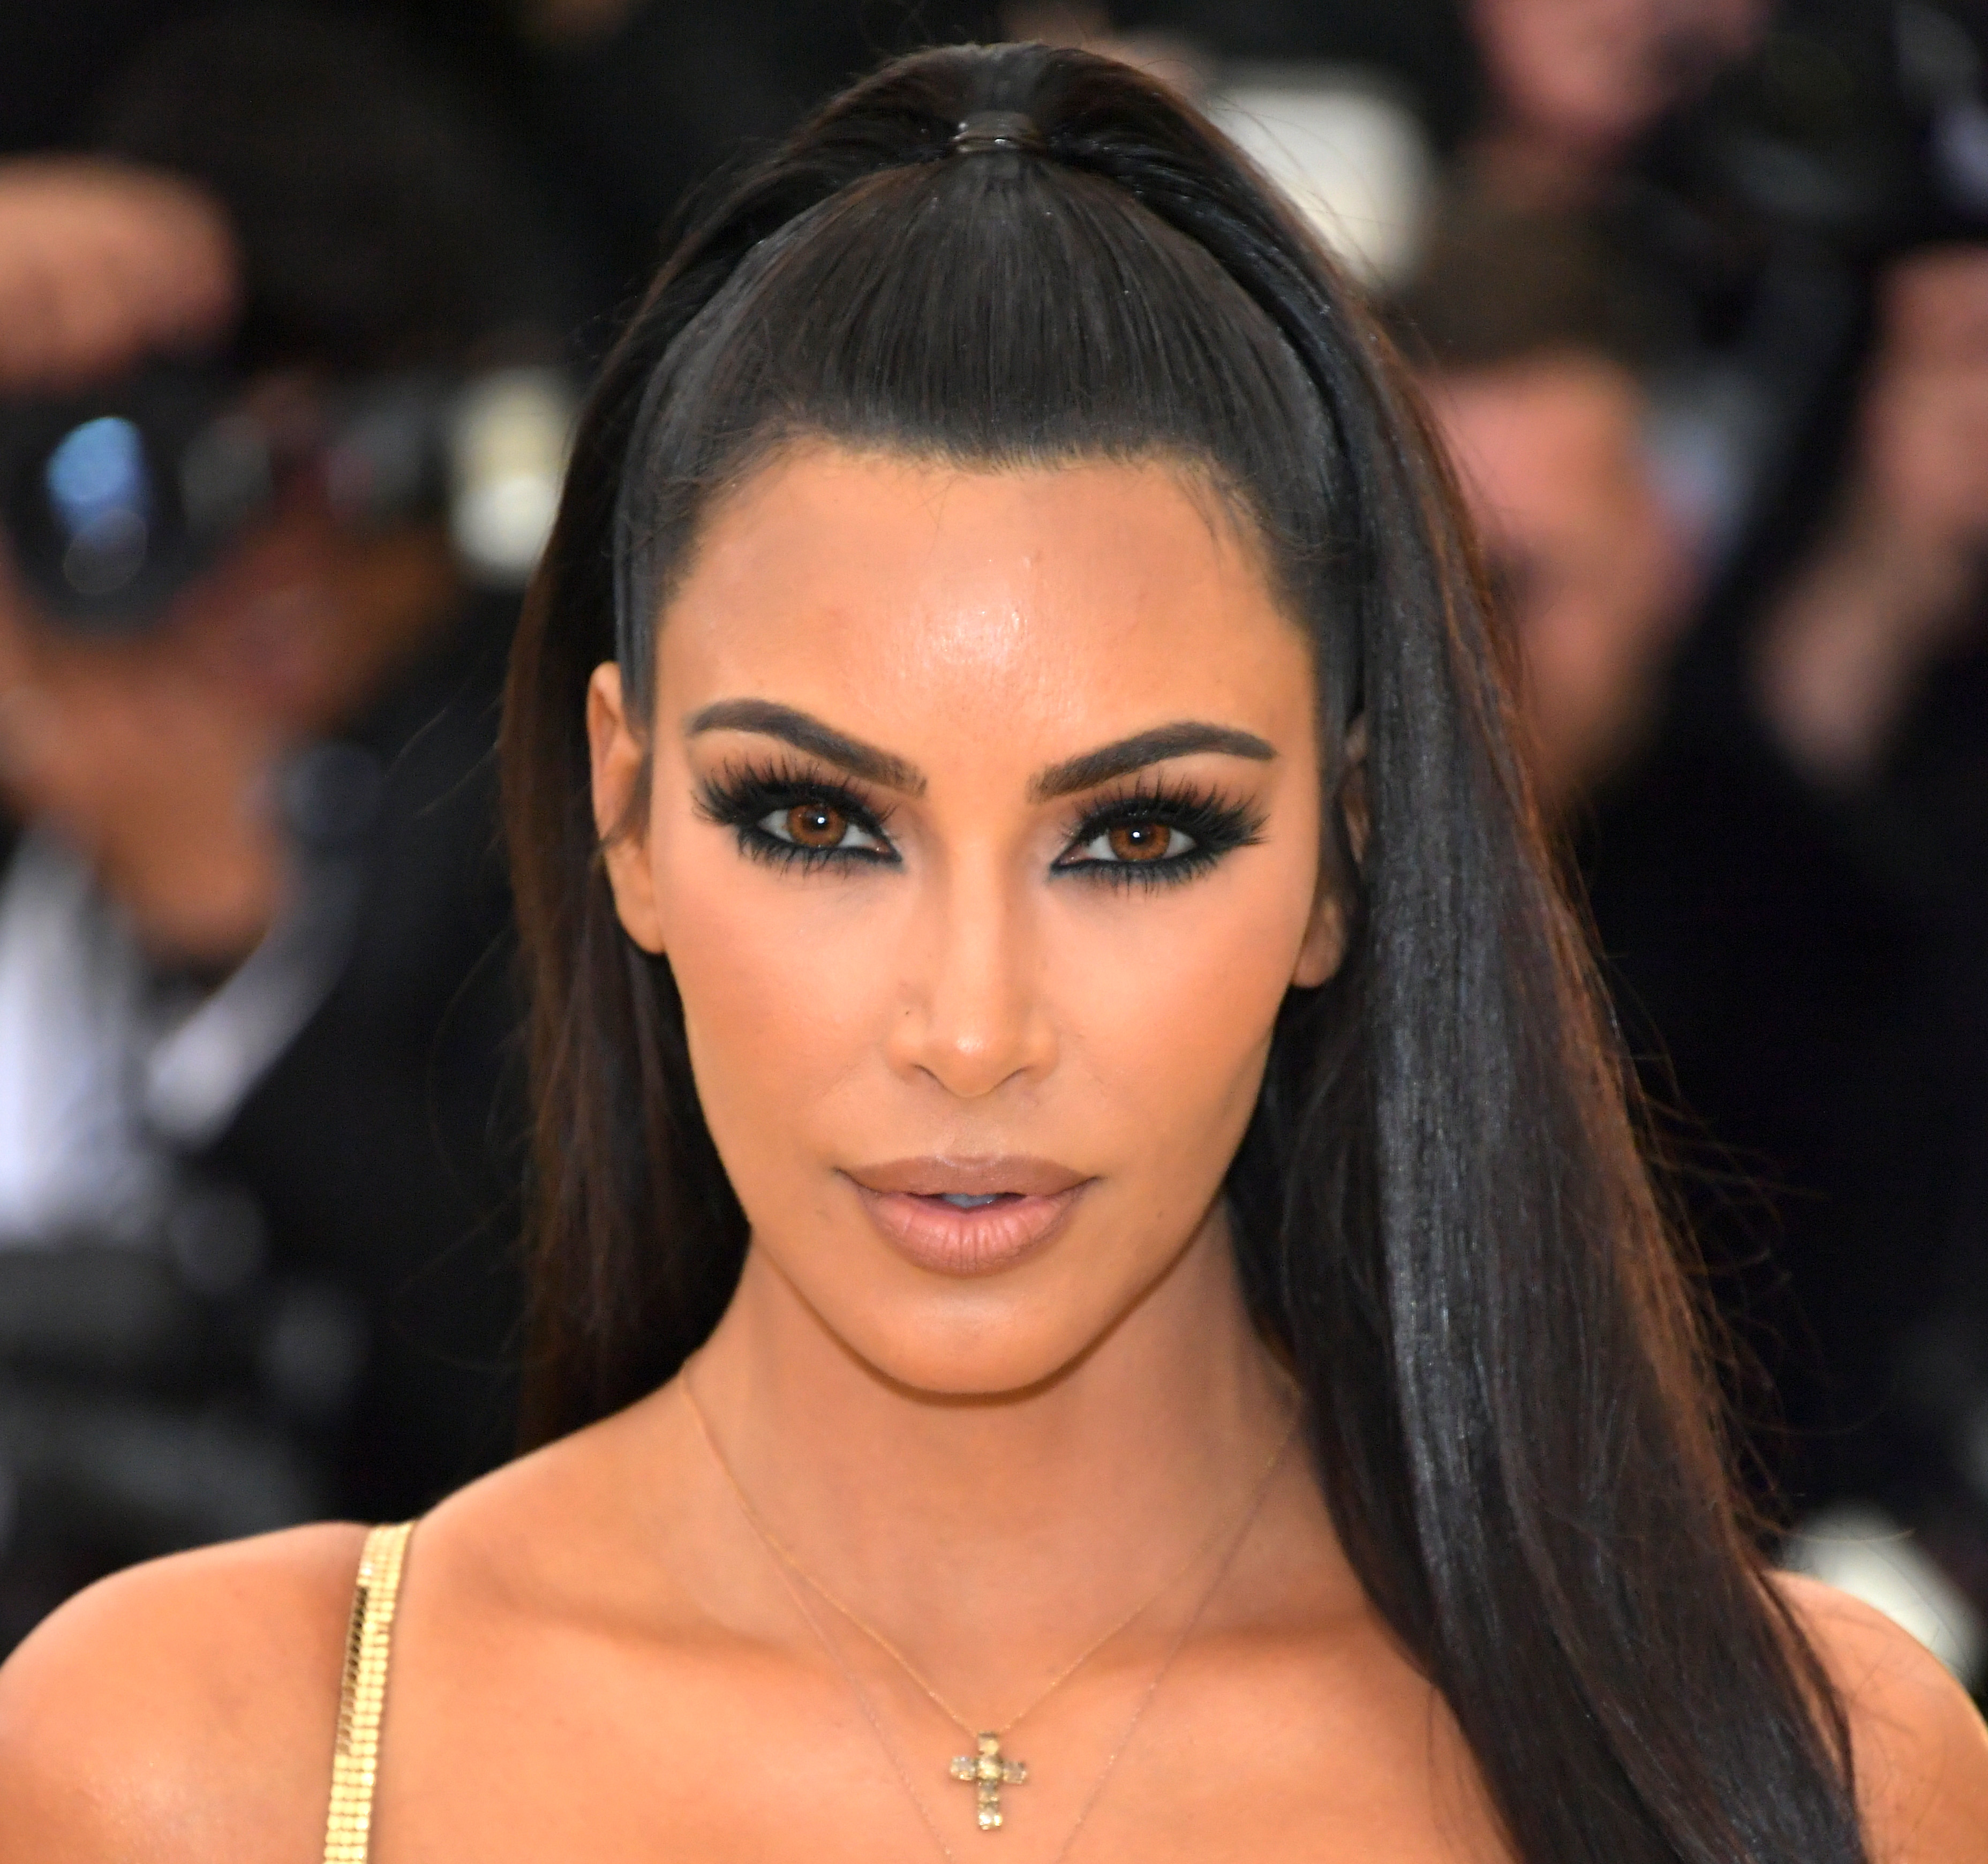 """Despite the unofficial title of being 'The Oscars of fashion', the Met Gala is equally about the boldest and bravest beauty looks. <br> <br> Case in point, Kim Kardashian West.<br> <br> The reality star made a (fashionably) late entrance at this year's celebration <em><a href=""""https://style.nine.com.au/2018/05/08/08/05/met-gala-2018"""" target=""""_blank"""" draggable=""""false"""">'Heavenly Bodies: Fashion and the Catholic Imagination'</a></em>, clad in a show-stopping fitted gold gown courtesy of Atelier Versace.<br> <br> Mrs West's gown may have had the Midas touch, but it was her beauty look that stole the show. <br> <br> While the mother-of-three never fronts up without a full face, this time she took her glam to the next level with the help of her go-to makeup artist, Mario Dedivanovic.<br> <br> Using an array of products from Kardashian's own makeup range, KKW Beauty, he used a mixture of eyeshadows, a brightening powder, crème contour sticks in two different shades, a highlighter and smouldering brown lipstick to give the beauty mogul a '90s supermodel-inspired look.<br> <br> Get the full breakdown of the mother-of-three's beauty look at Dedivanovic's Instagram page @makeupbymario.<br> <br> Click through to see the other stars that put their best face forward at this year's Met Gala."""